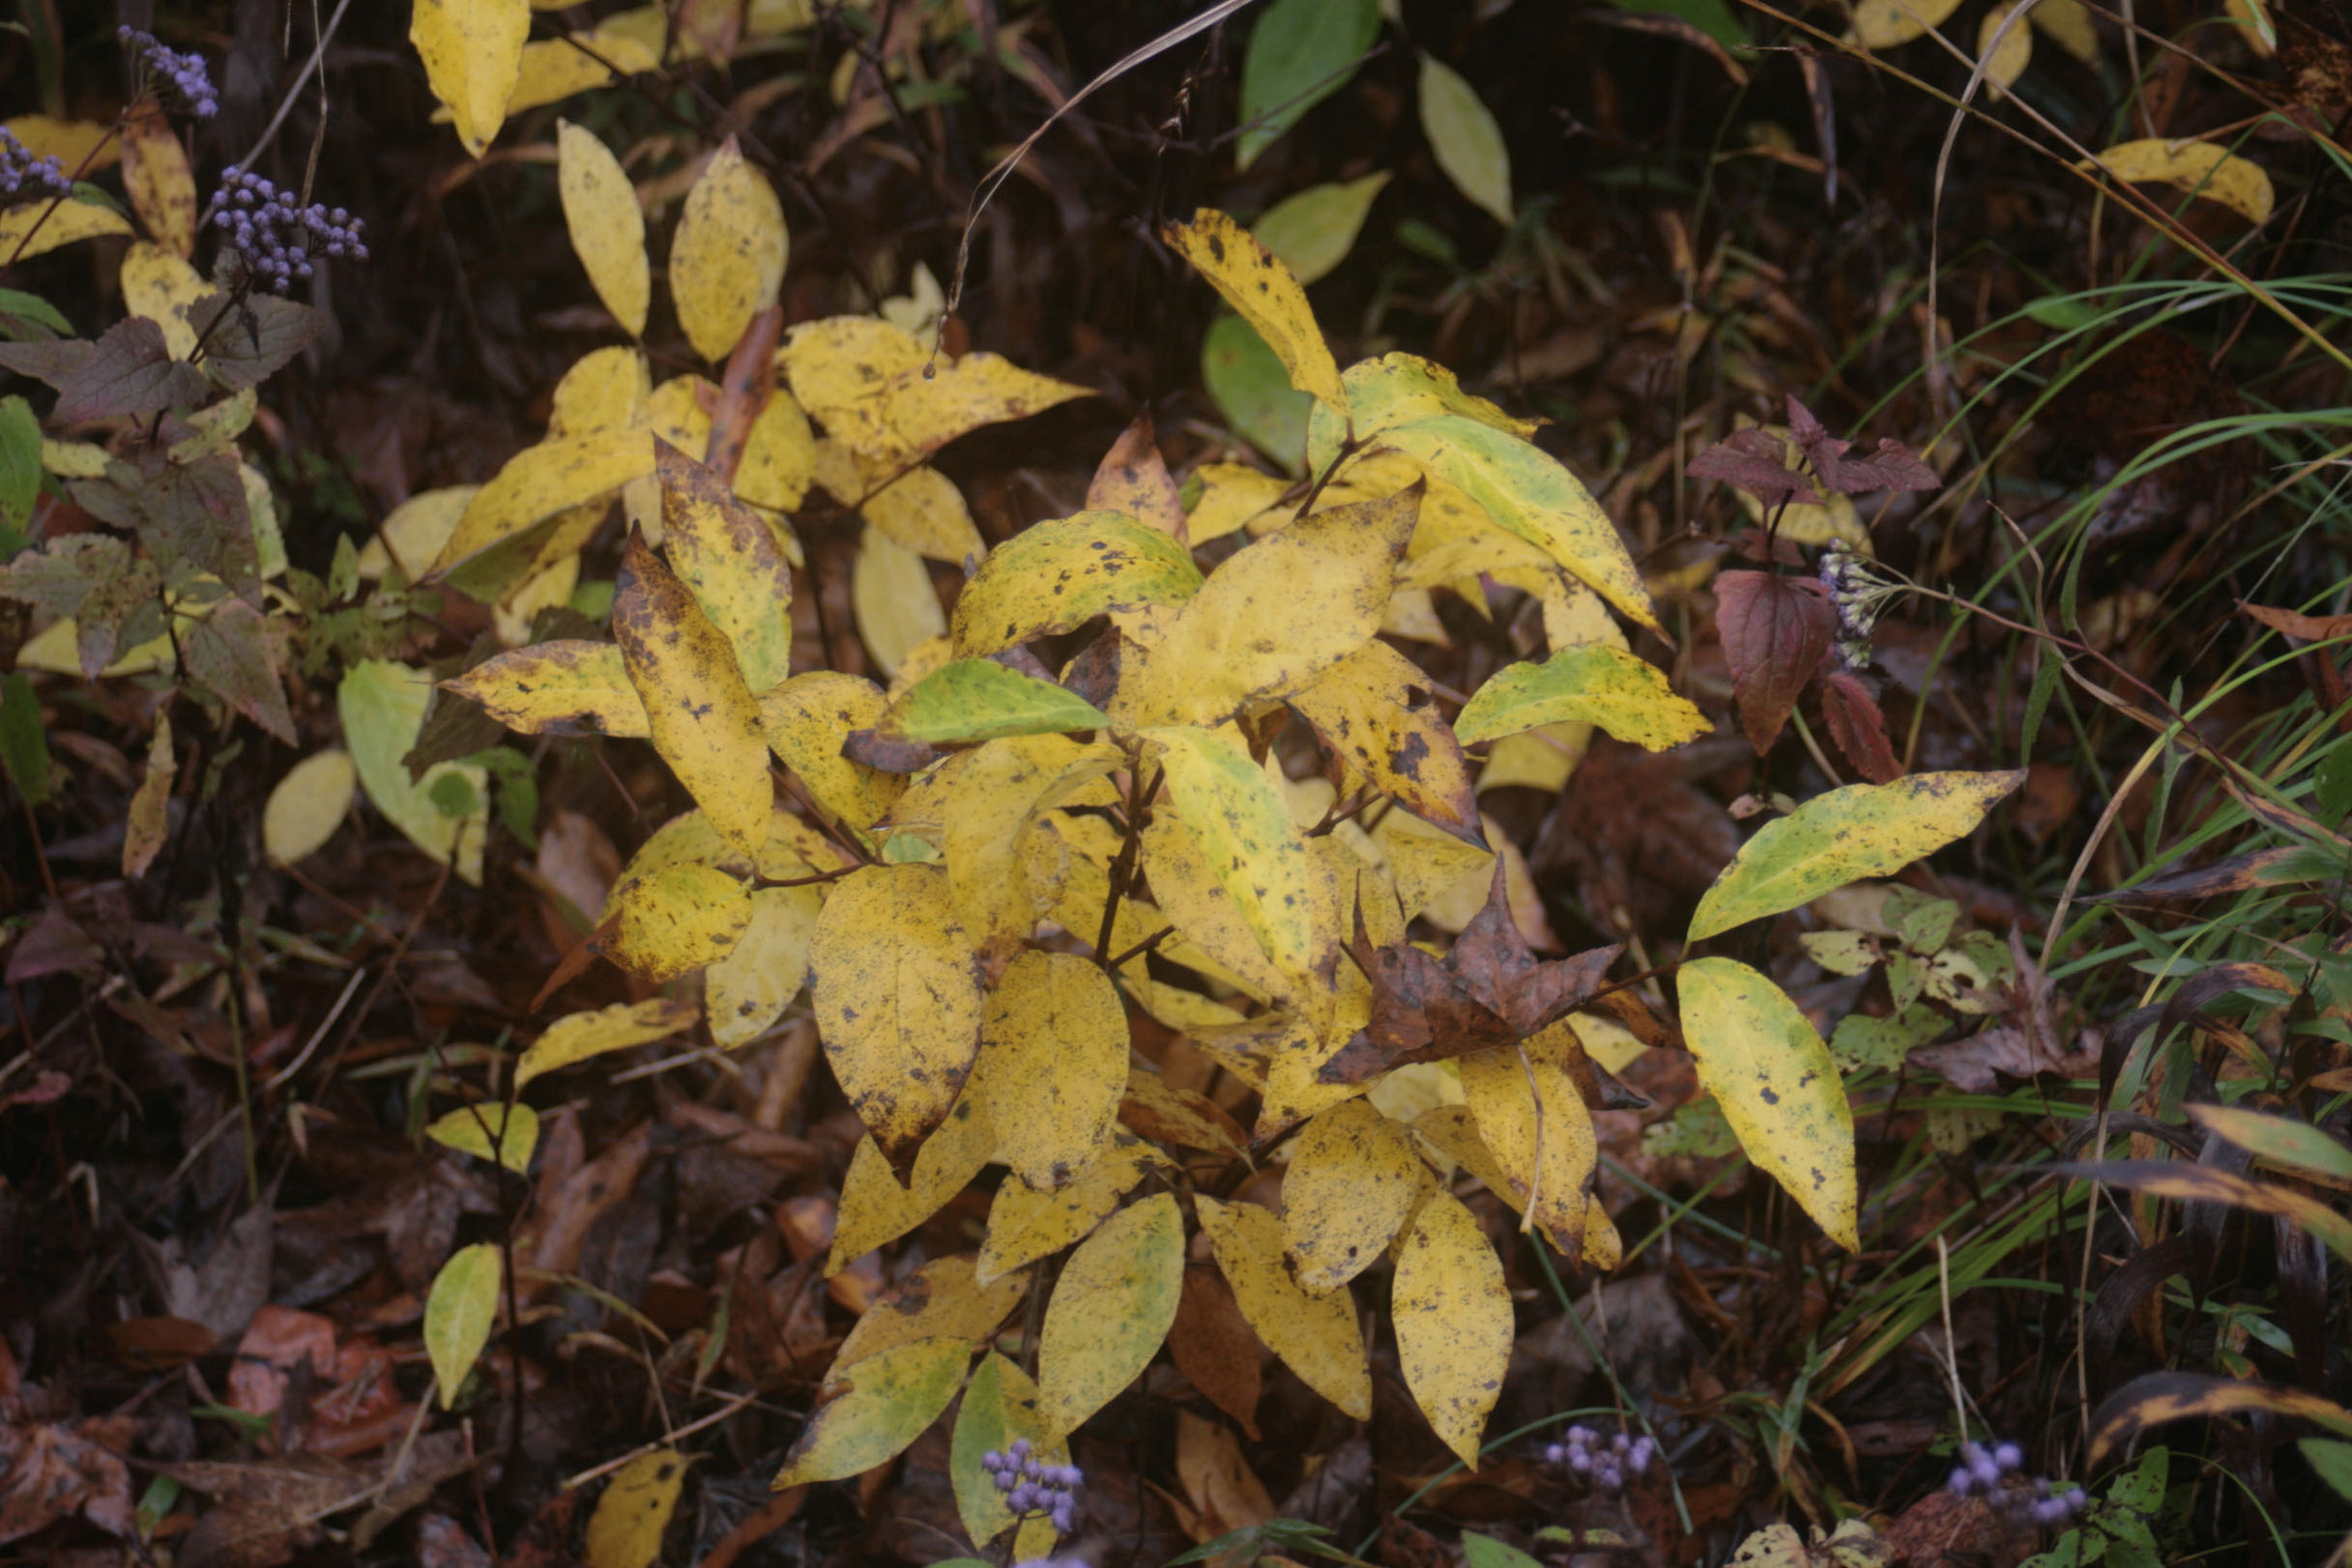 The Scientific Name is Calycanthus floridus. You will likely hear them called Sweet shrub; Sweet Betsy, Carolina allspice. This picture shows the Close-up of the yellow Fall leaf color of Calycanthus floridus